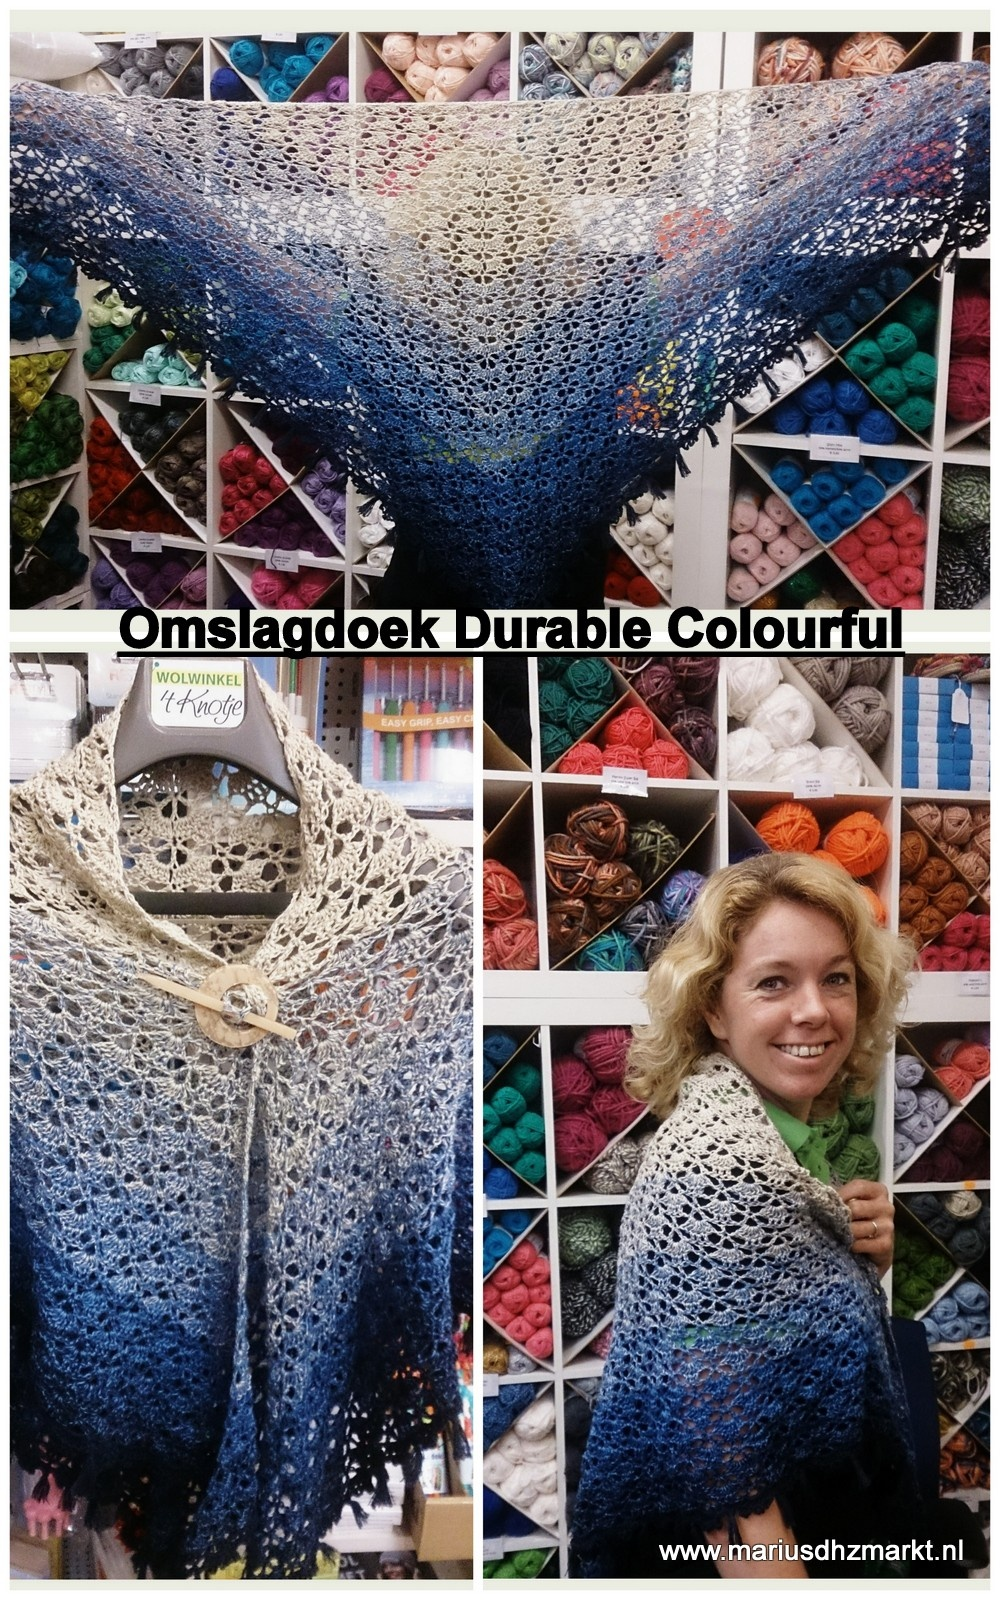 omslagdoek Durable Colourful